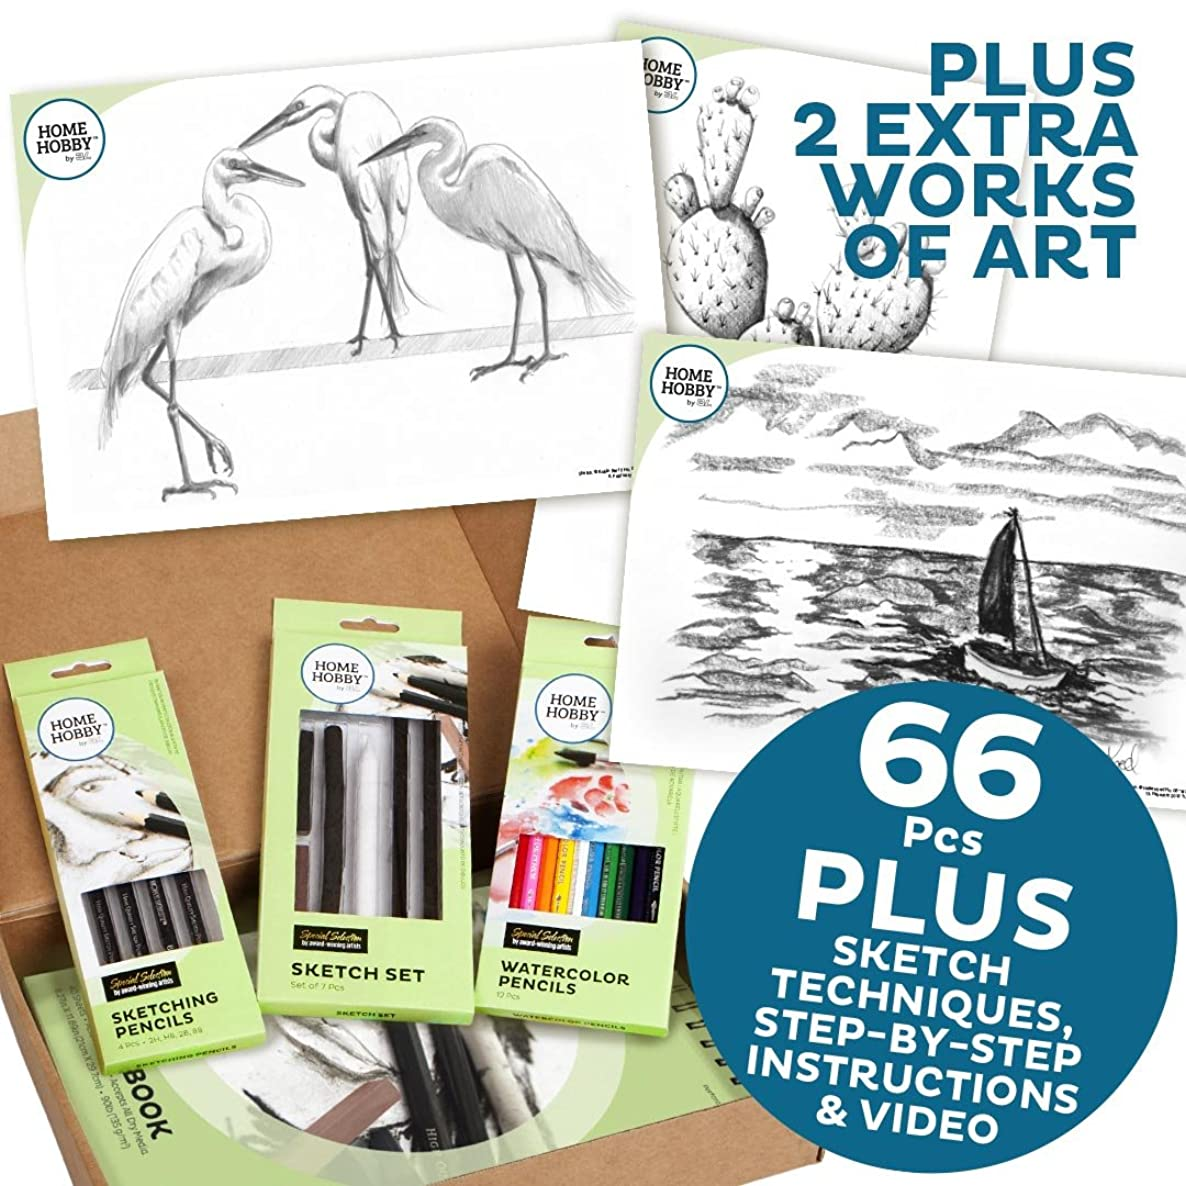 THE HOMEHOBBY BY 3L?SKETCH STUDIO KITPLUS 14204 - THREE EGRETS?BY ROBIN BERRY